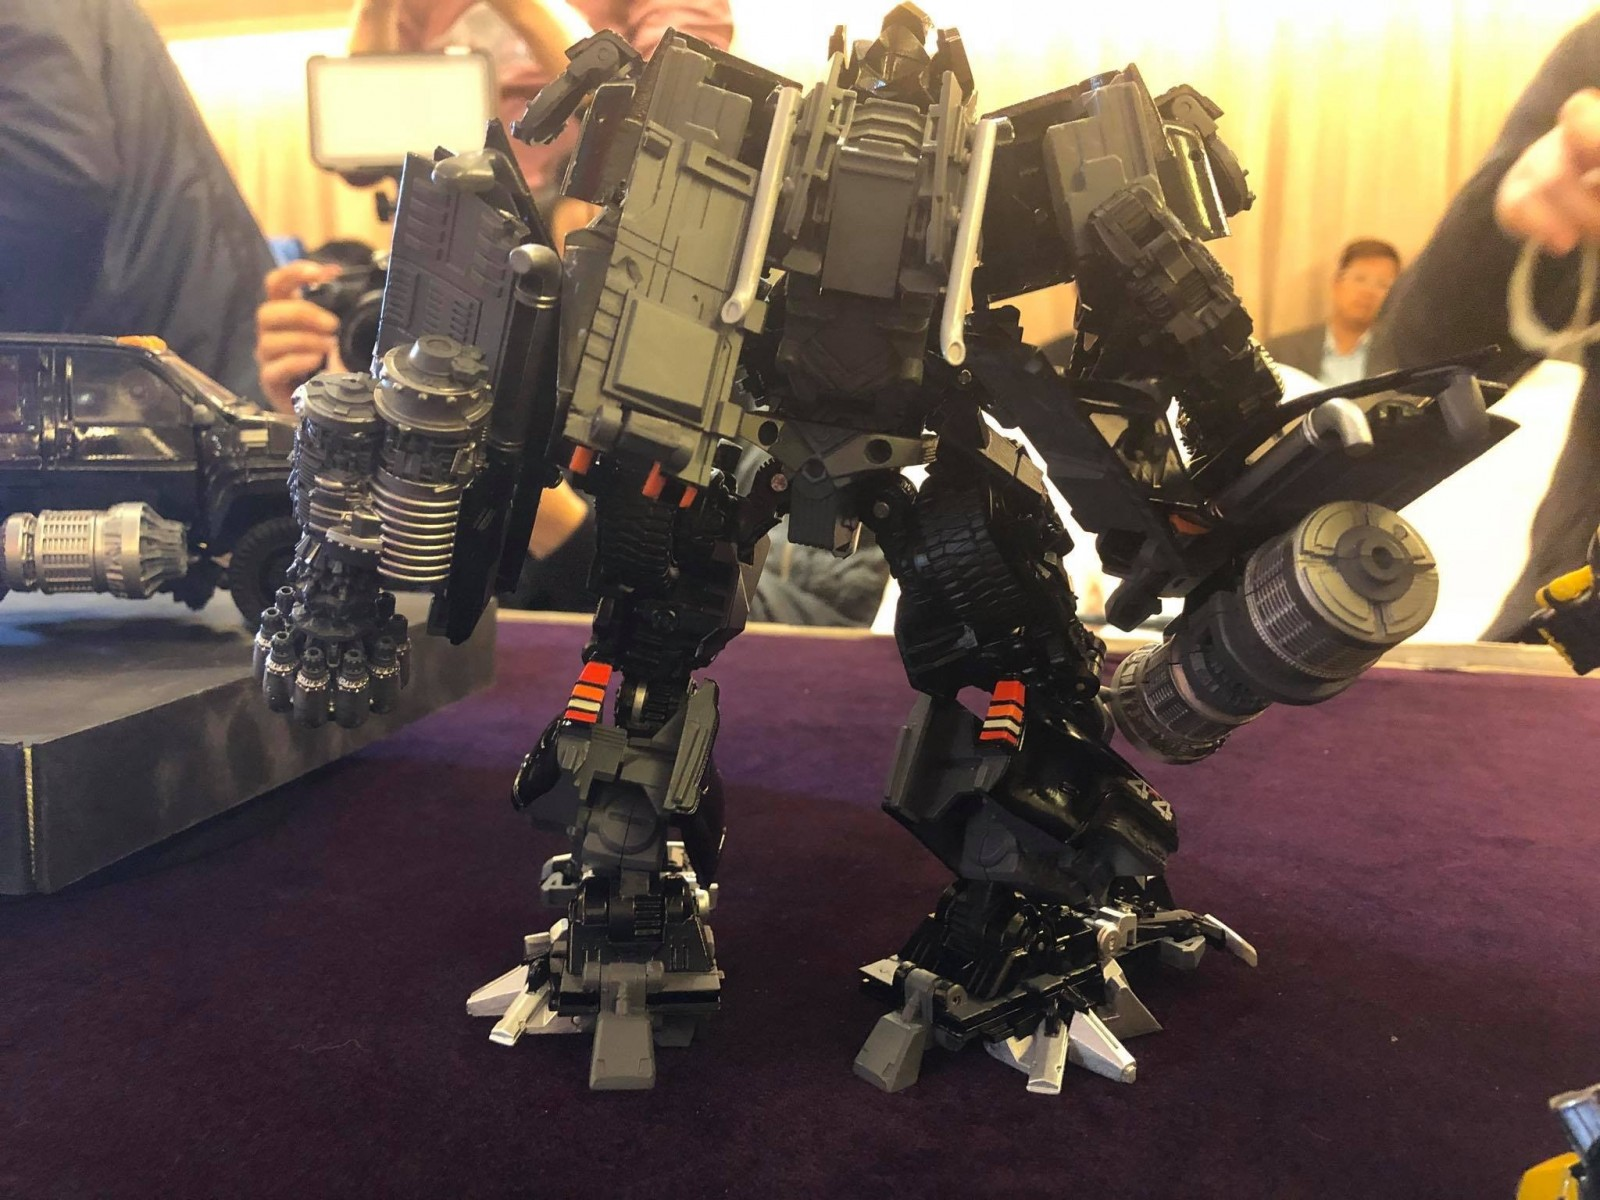 Transformers News: Full Reveal of Transformers Movie Masterpiece MPM-6 Ironhide at